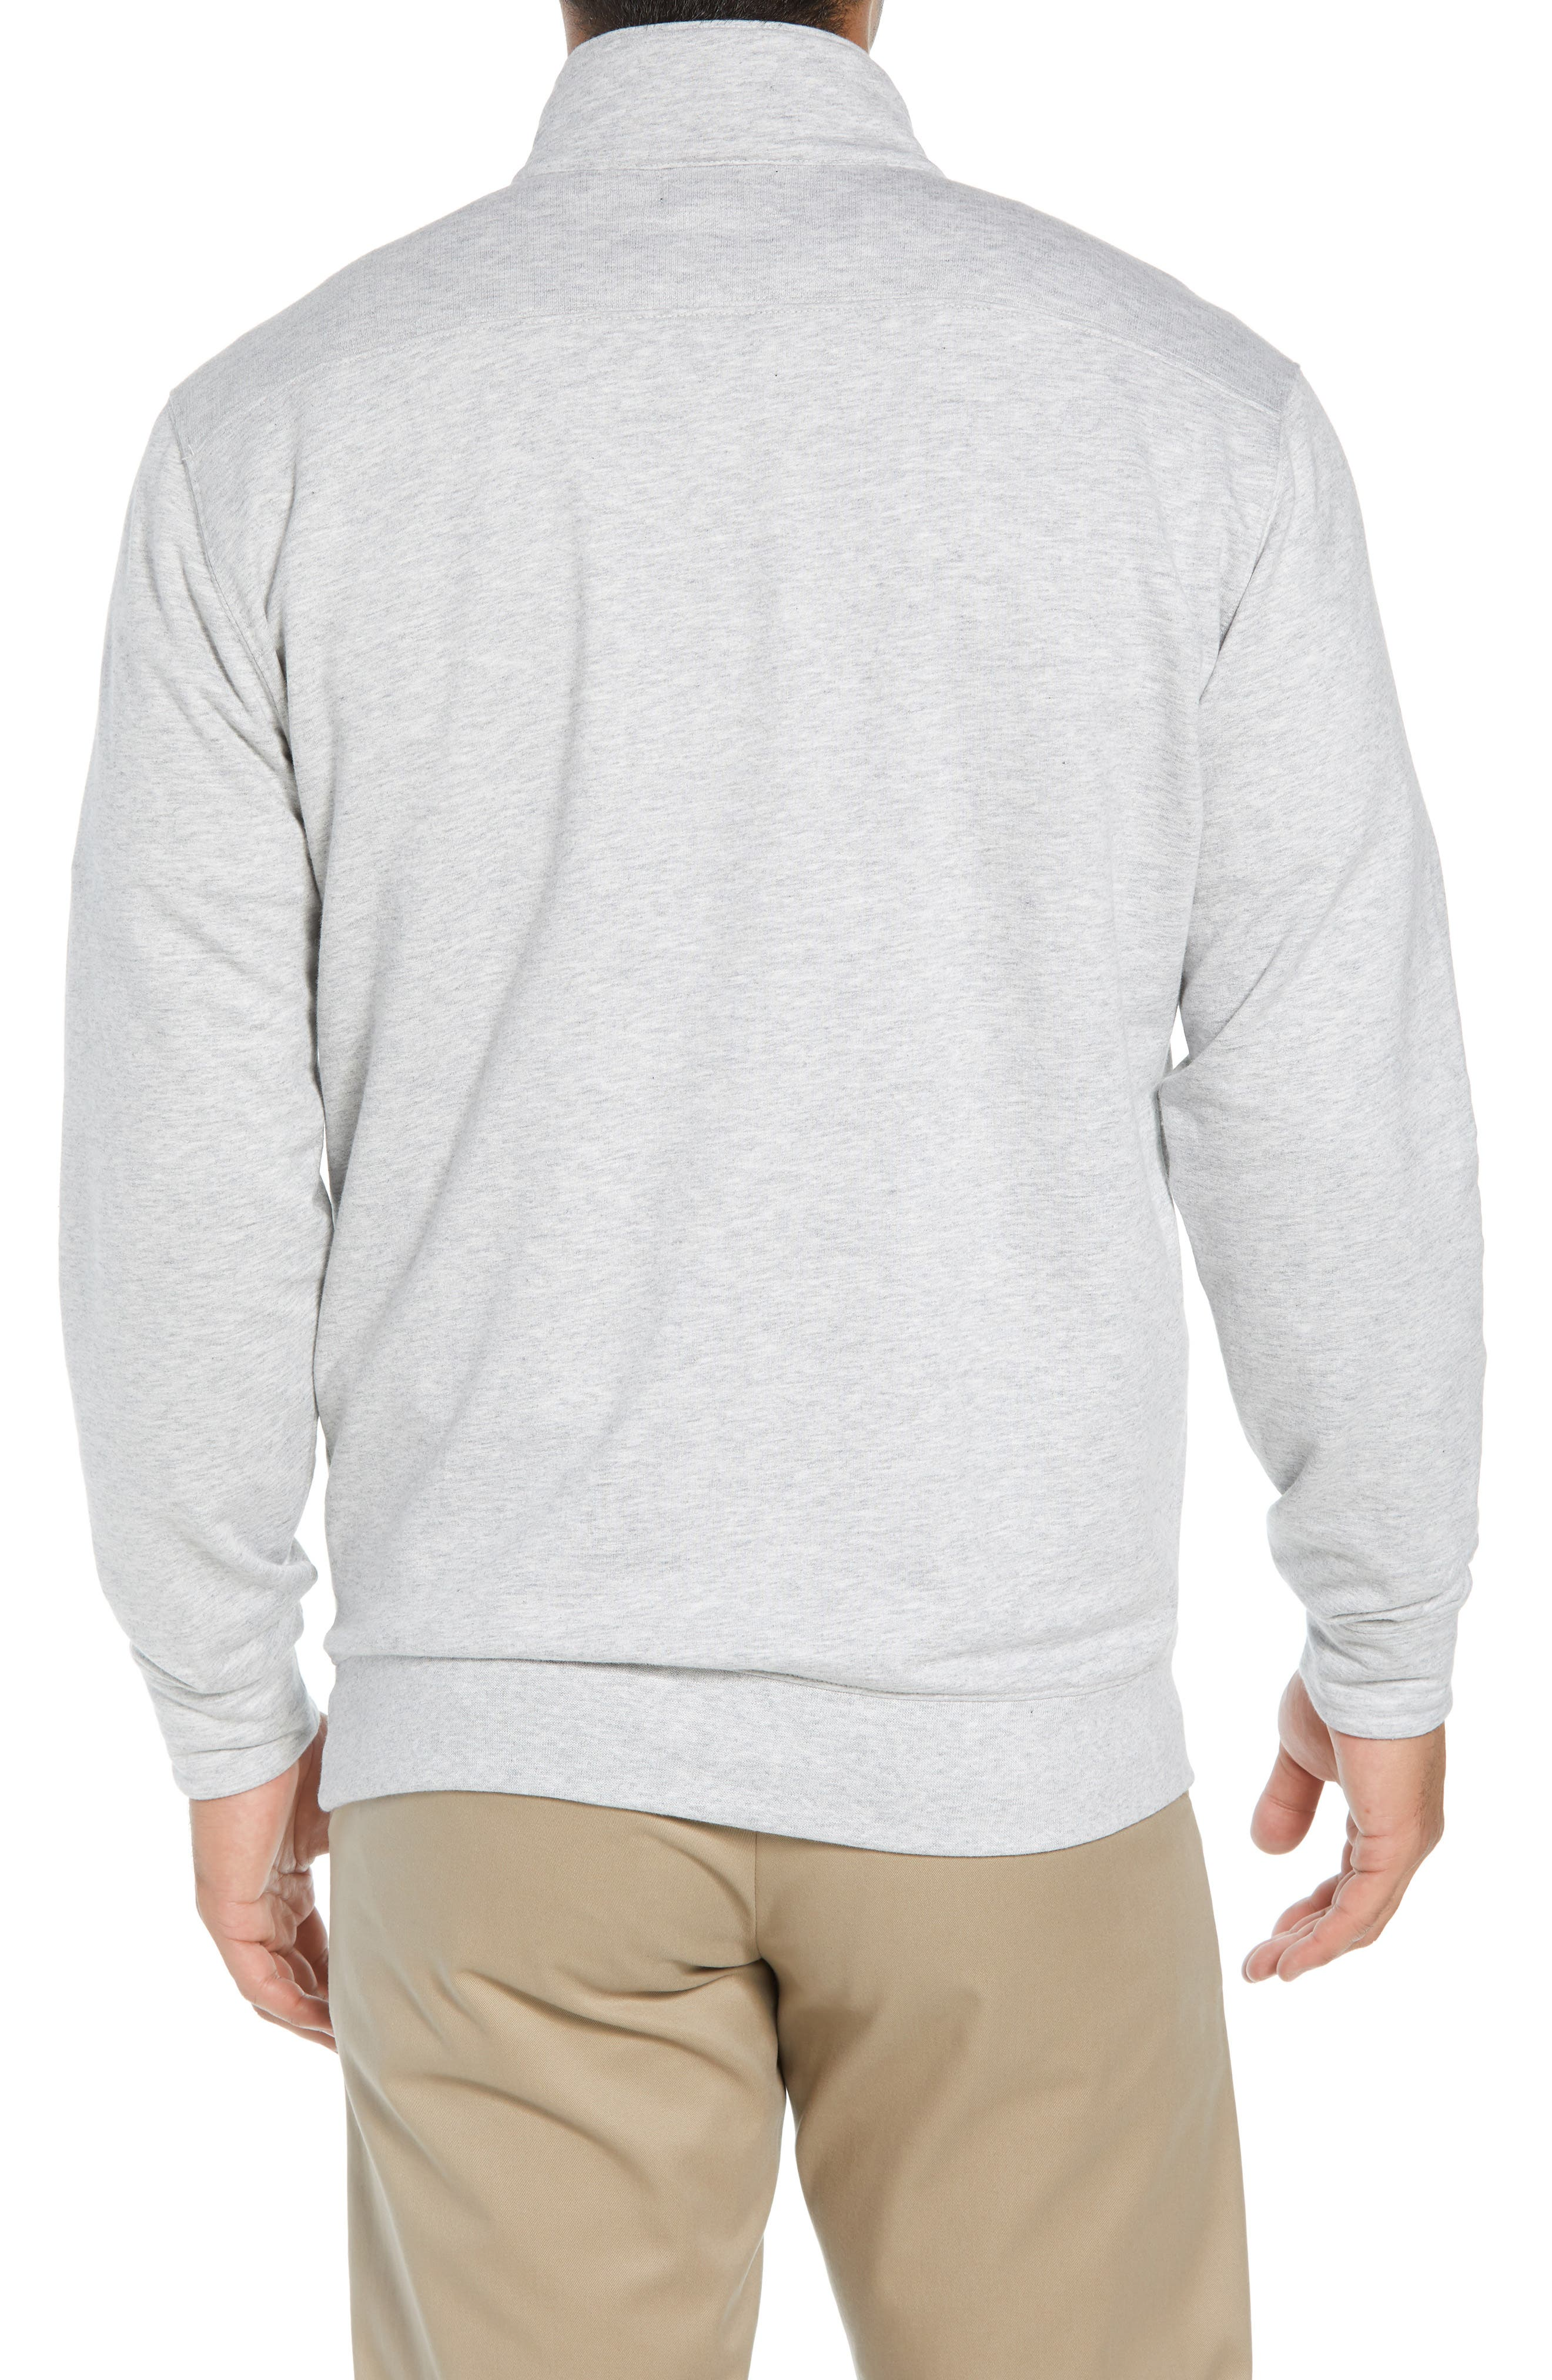 Clubhouse Pullover,                             Alternate thumbnail 2, color,                             GREY